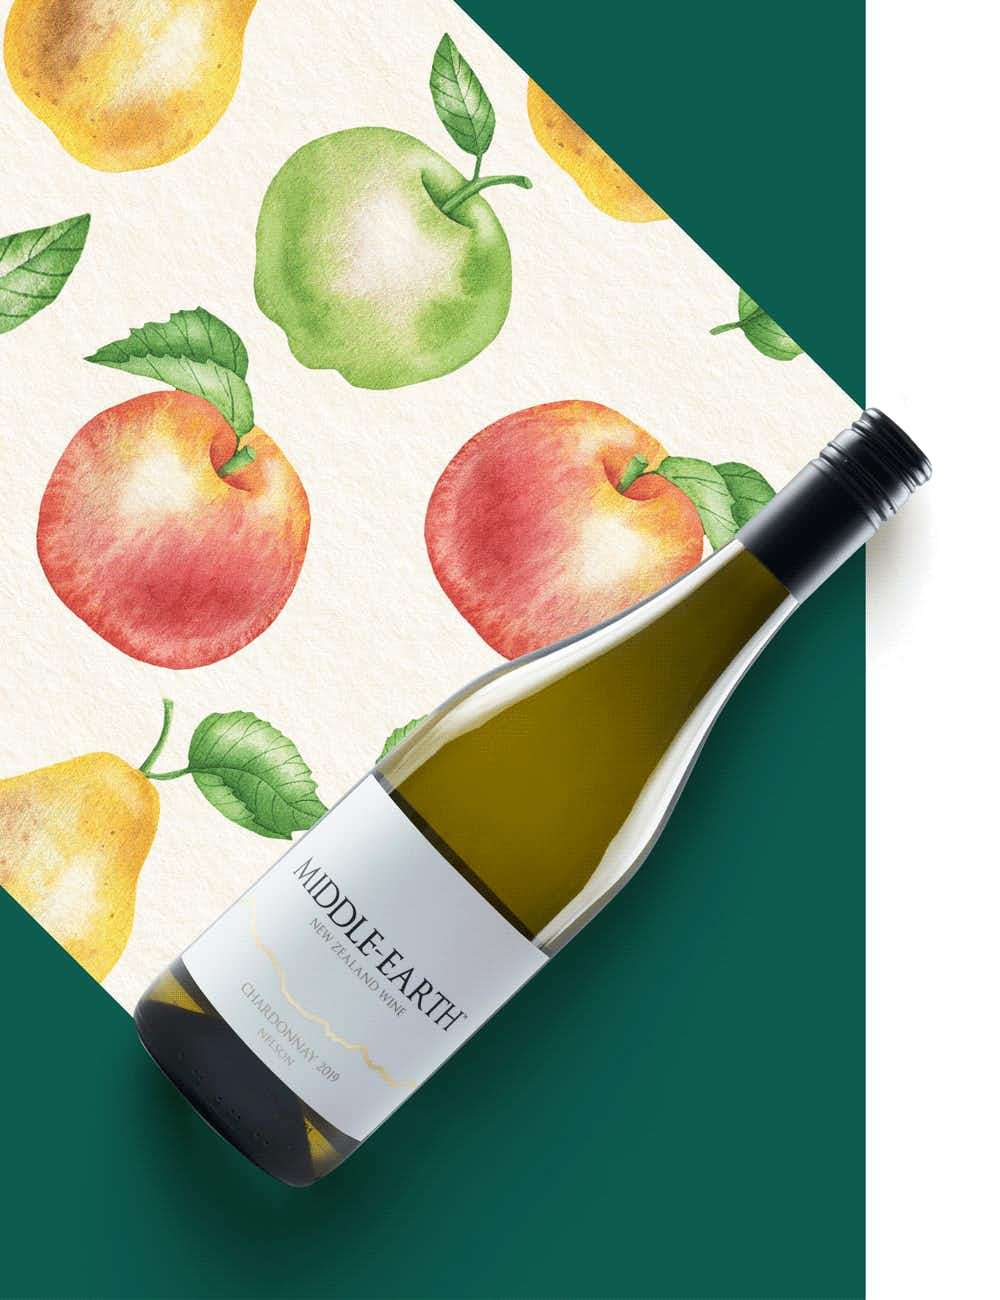 Middle-Earth Wines Chardonnay 2019